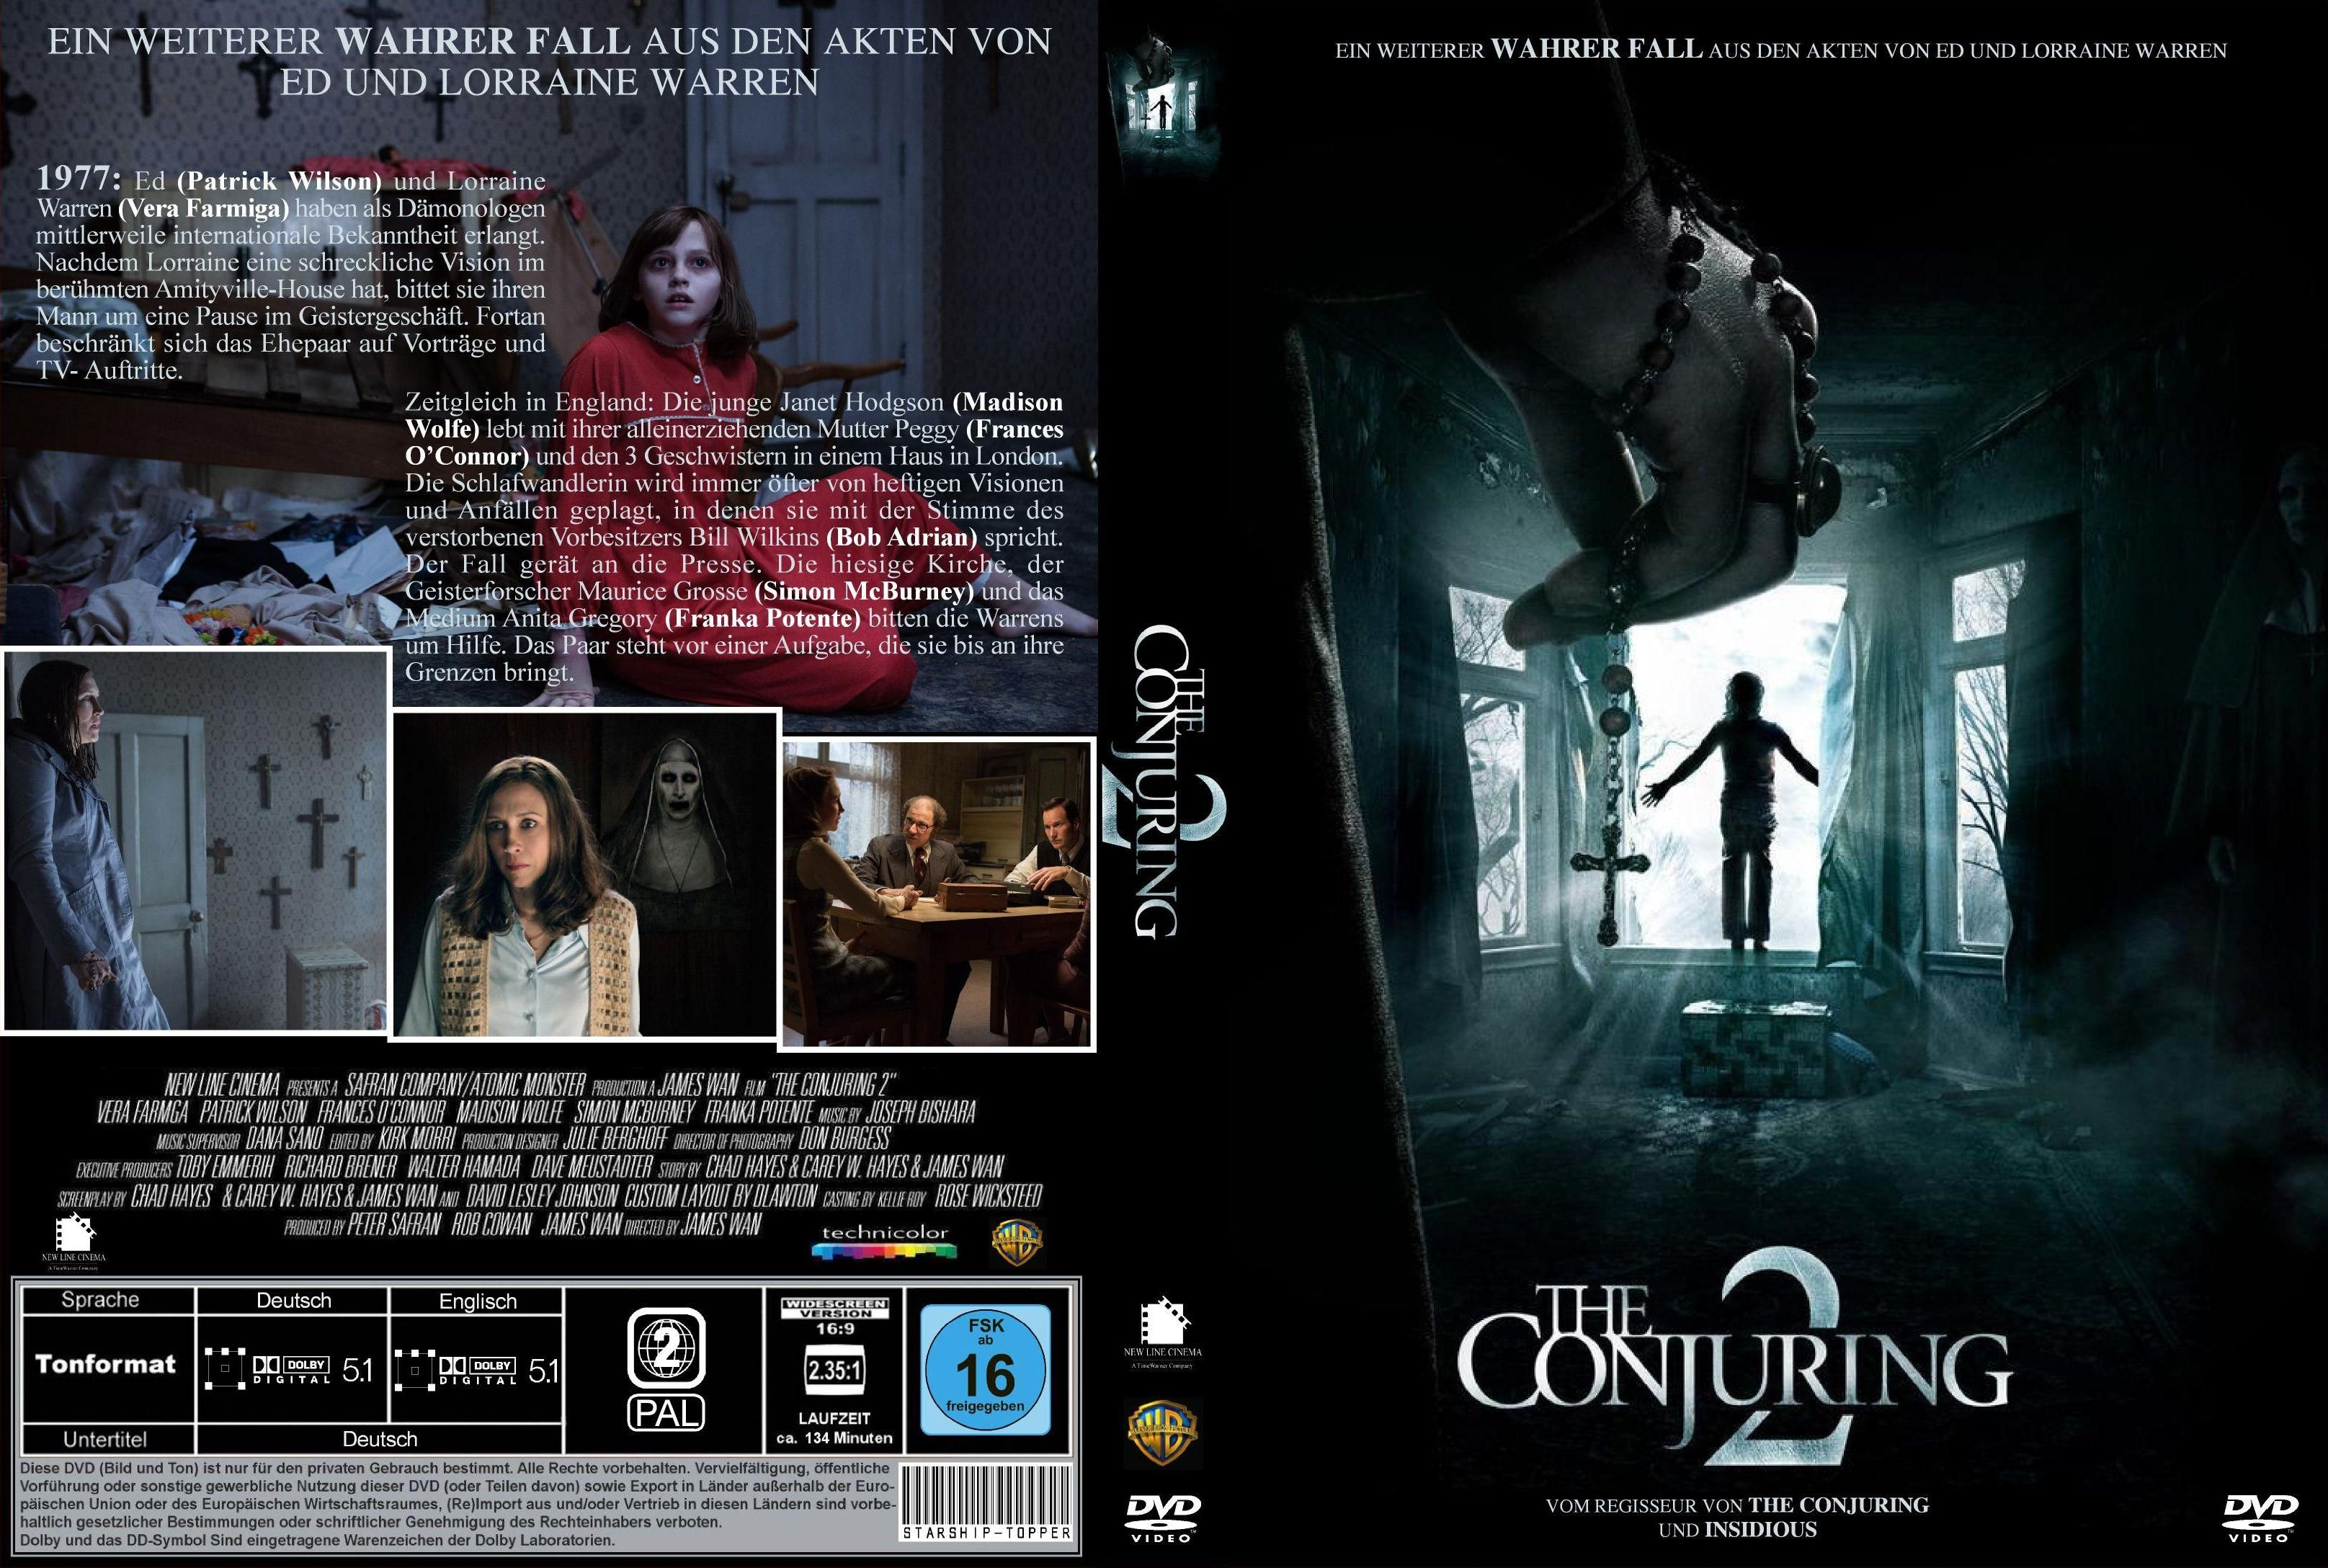 The Conjuring 2 Memorable Lines From The Movie Crooked Man There Was A Crooked Man And He Walked A Crooked Mile The Conjuring Dvd Covers Custom Dvd